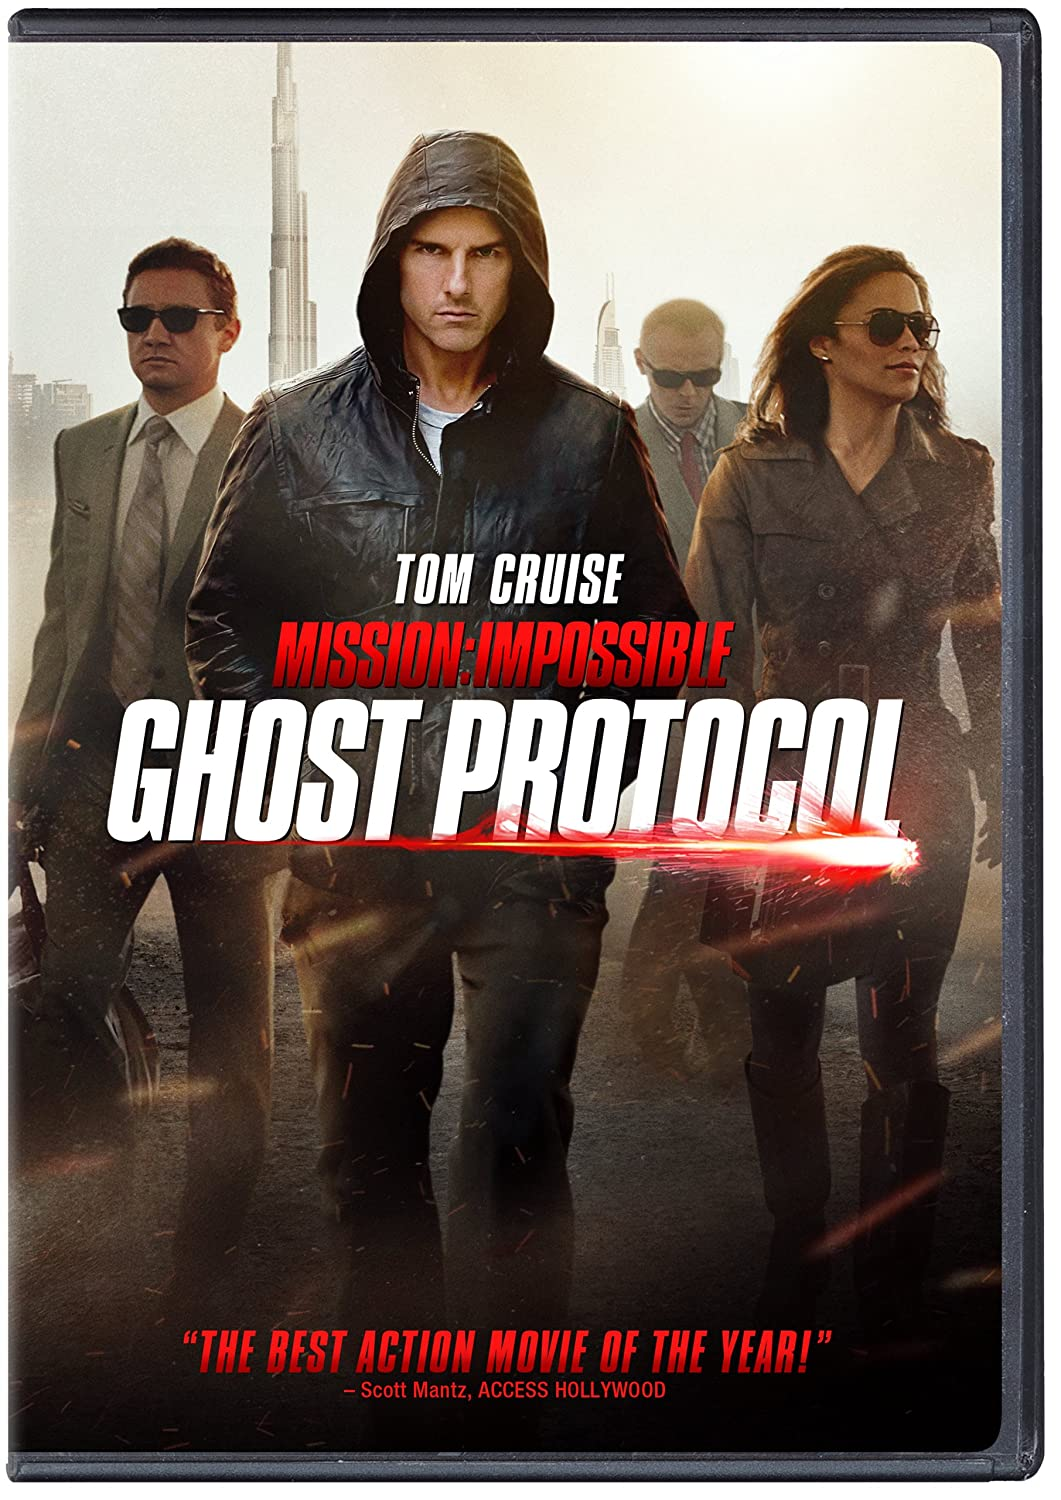 Mission Impossible Ghost Protocol Import Italien Amazonfr Tom